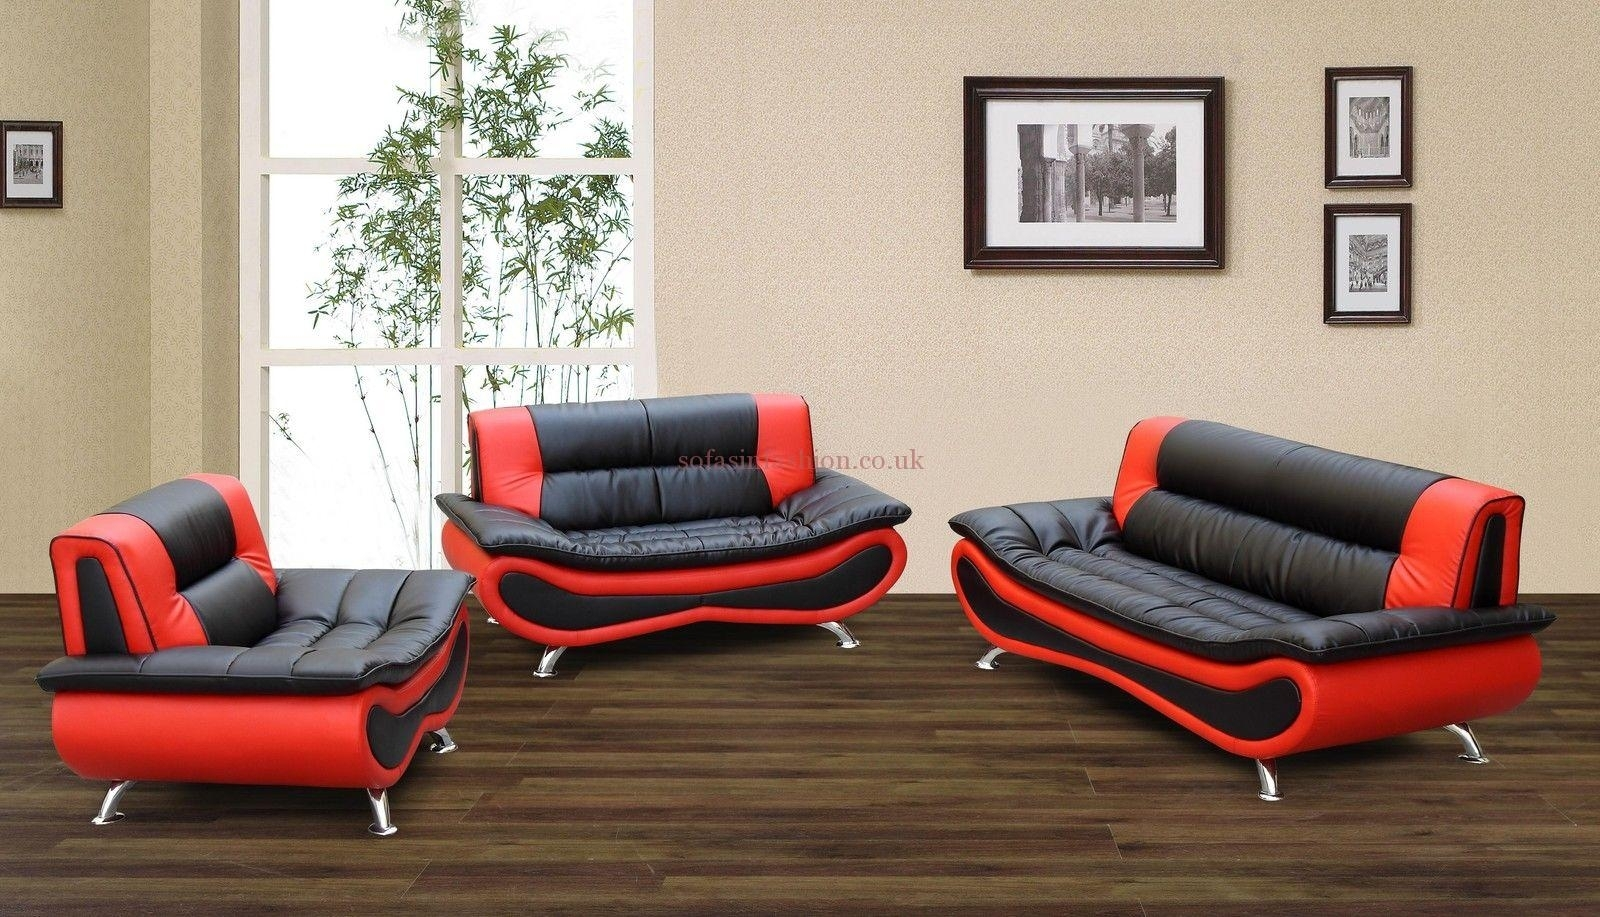 Leather Sofa Sale Black Red Napoli Faux Sofas – Dma Homes | #7369 With Regard To Red And Black Sofas (View 4 of 10)